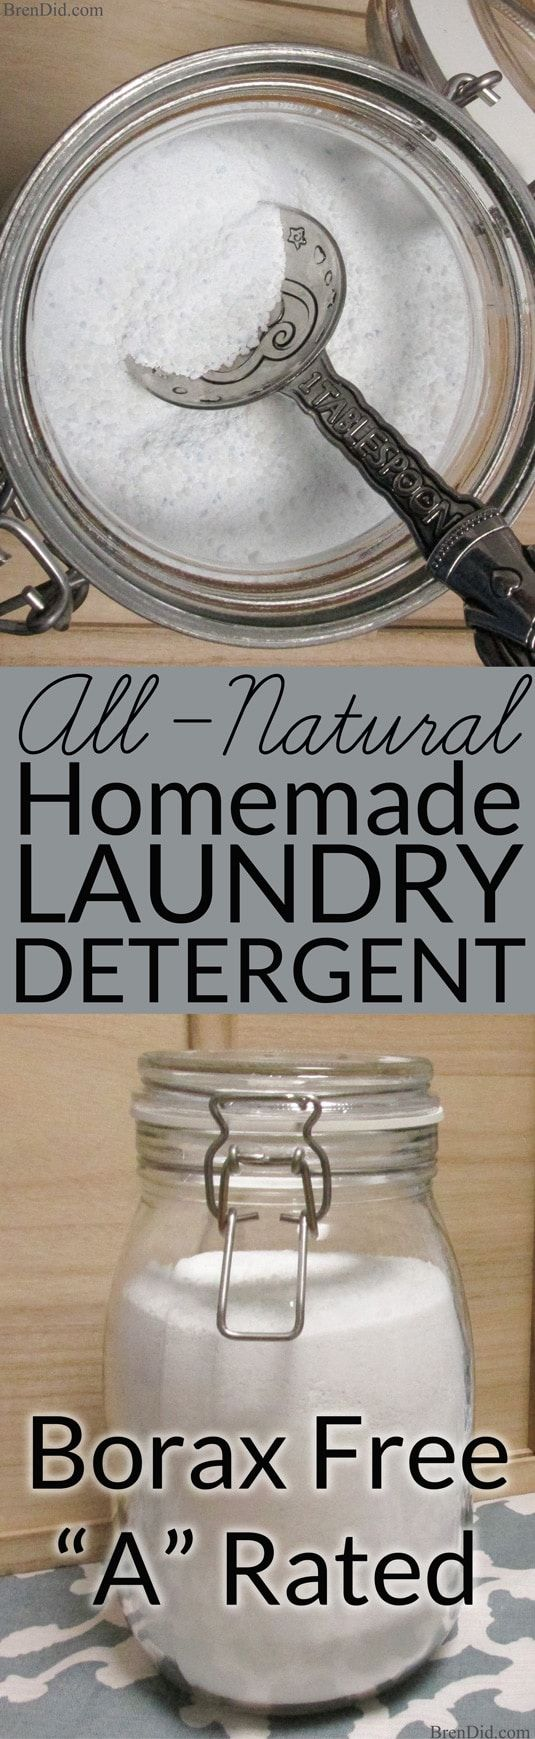 This tutorial for Borax free natural homemade laundry detergent makes 320 loads of non-toxic laundry detergent for $20.75 ( $0.06 per load) and rates an A on the Environmental Working Group (EWG) Healthy Cleaning scale. It's a win-win for natural cleaning and fugal living.  via @brendidblog